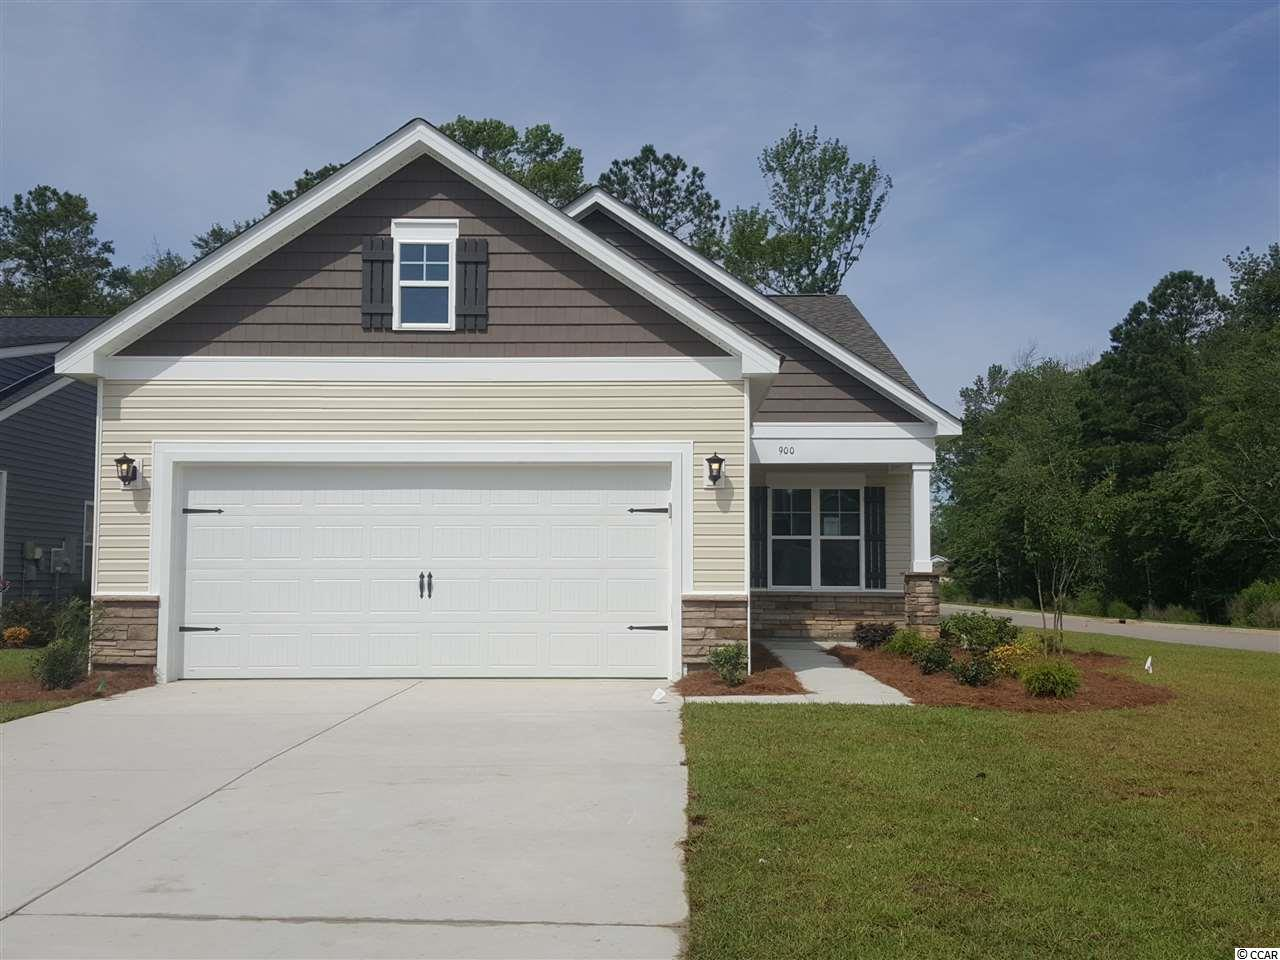 This Home is under Contract. This Whitehall floor plan features SS appliances with a Natural Gas Range, Granite Countertops, EVP Flooring in main living areas, Attic Storage over the 2 car garage, covered porch and irrigation.